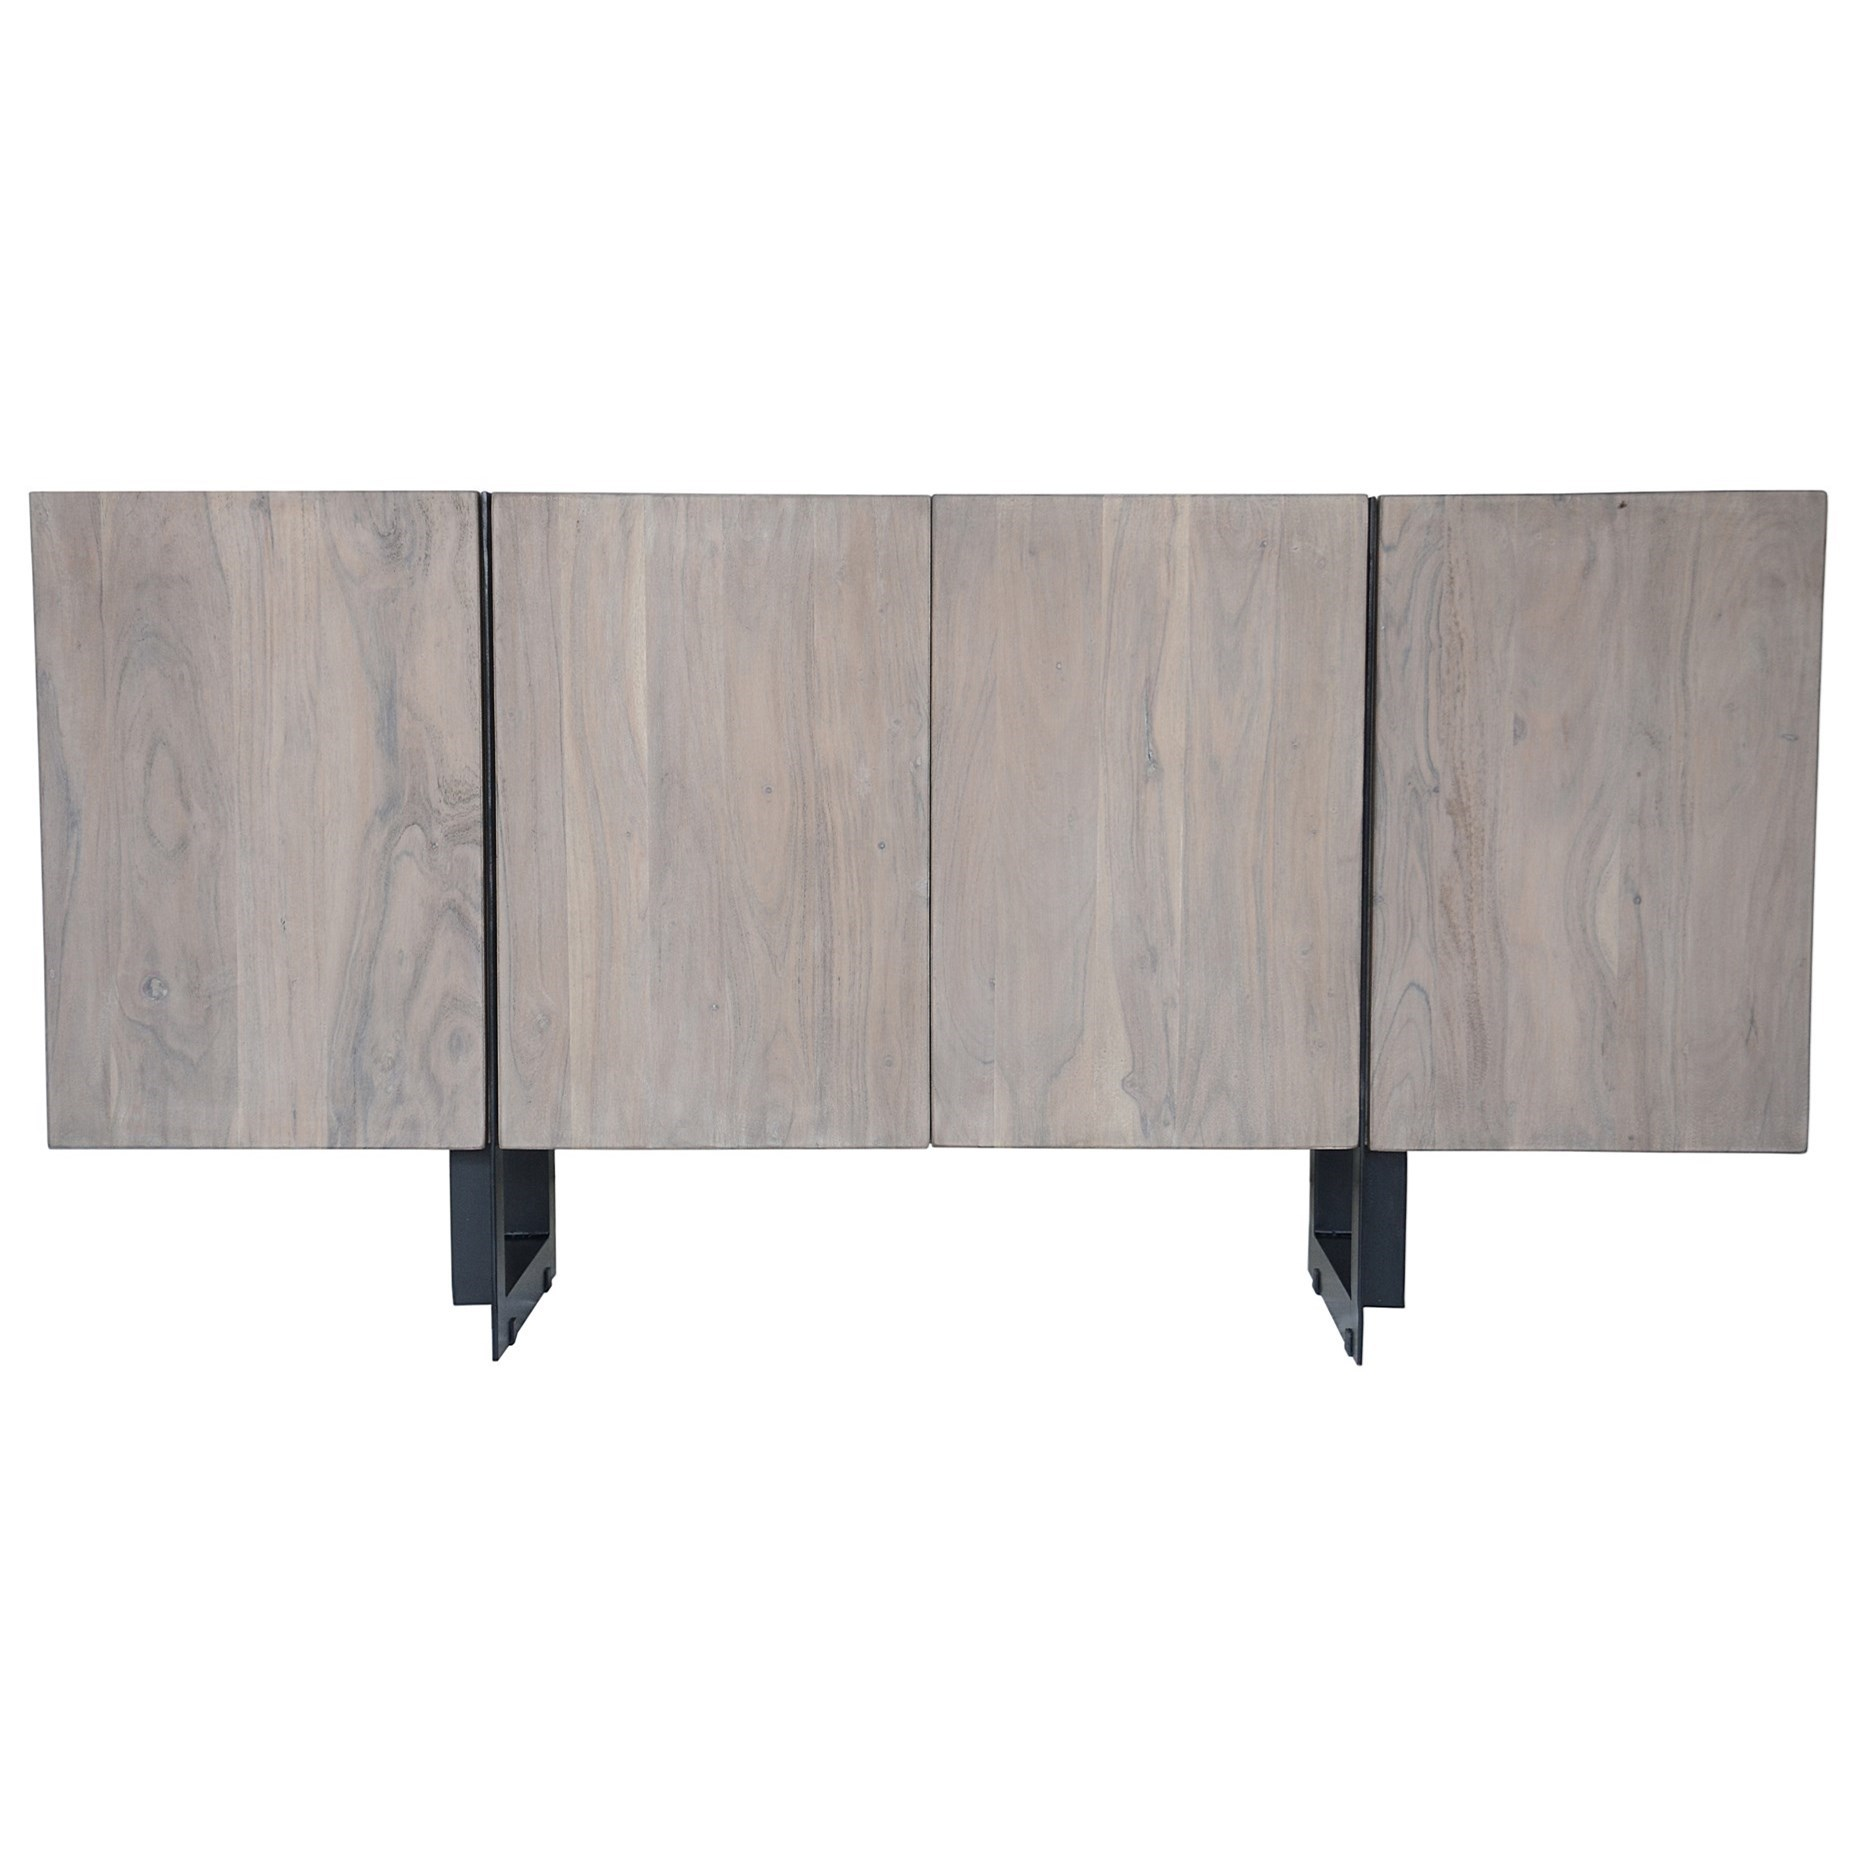 Tiburon Sideboard Small by Moe's Home Collection at Stoney Creek Furniture